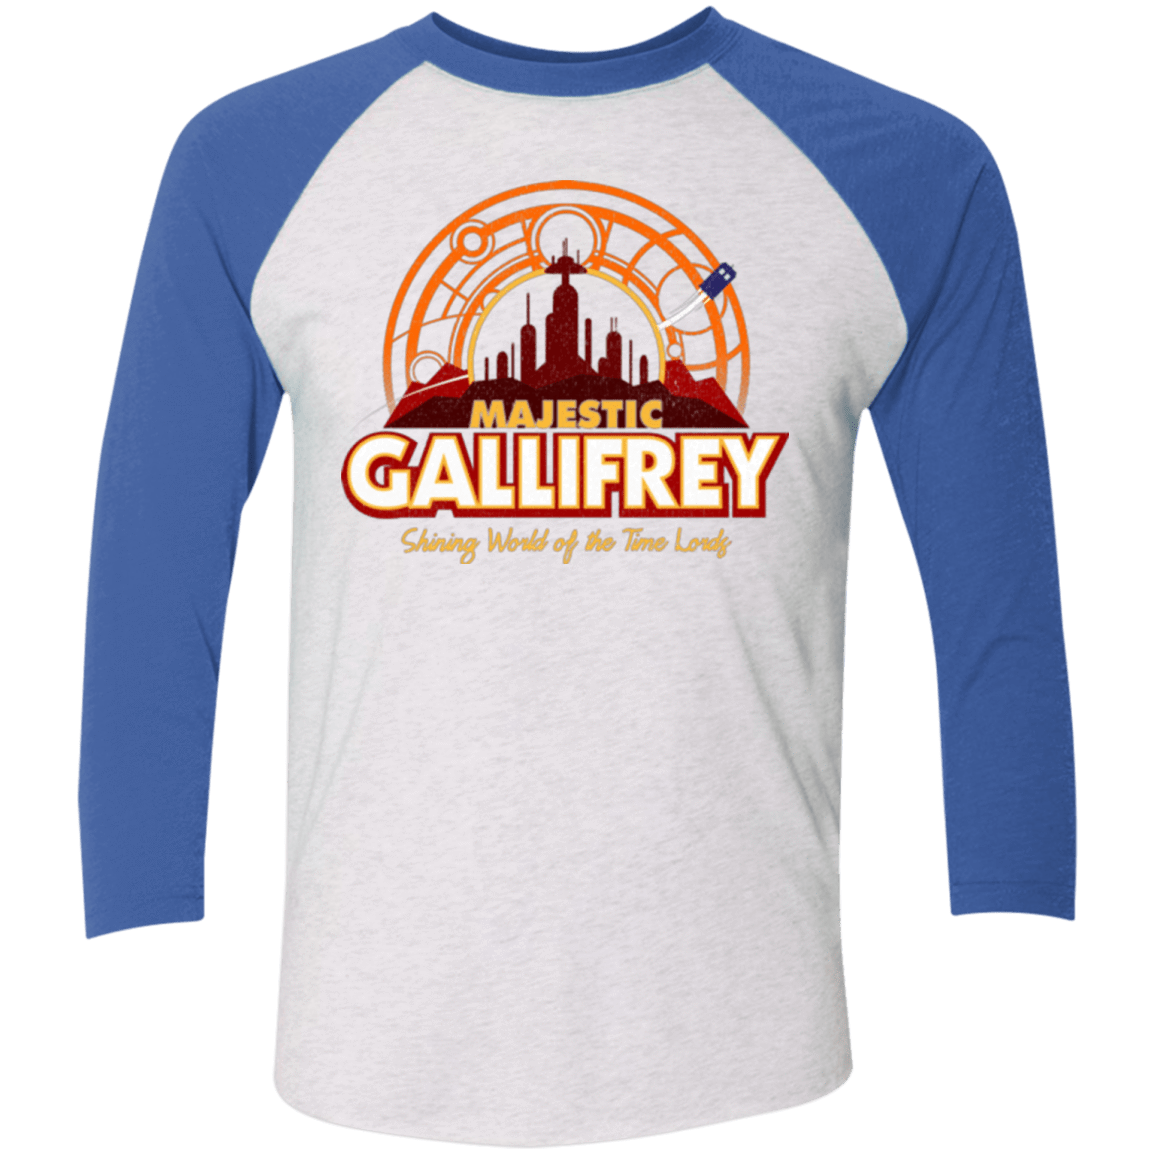 T-Shirts Heather White/Vintage Royal / X-Small Majestic Gallifrey Triblend 3/4 Sleeve